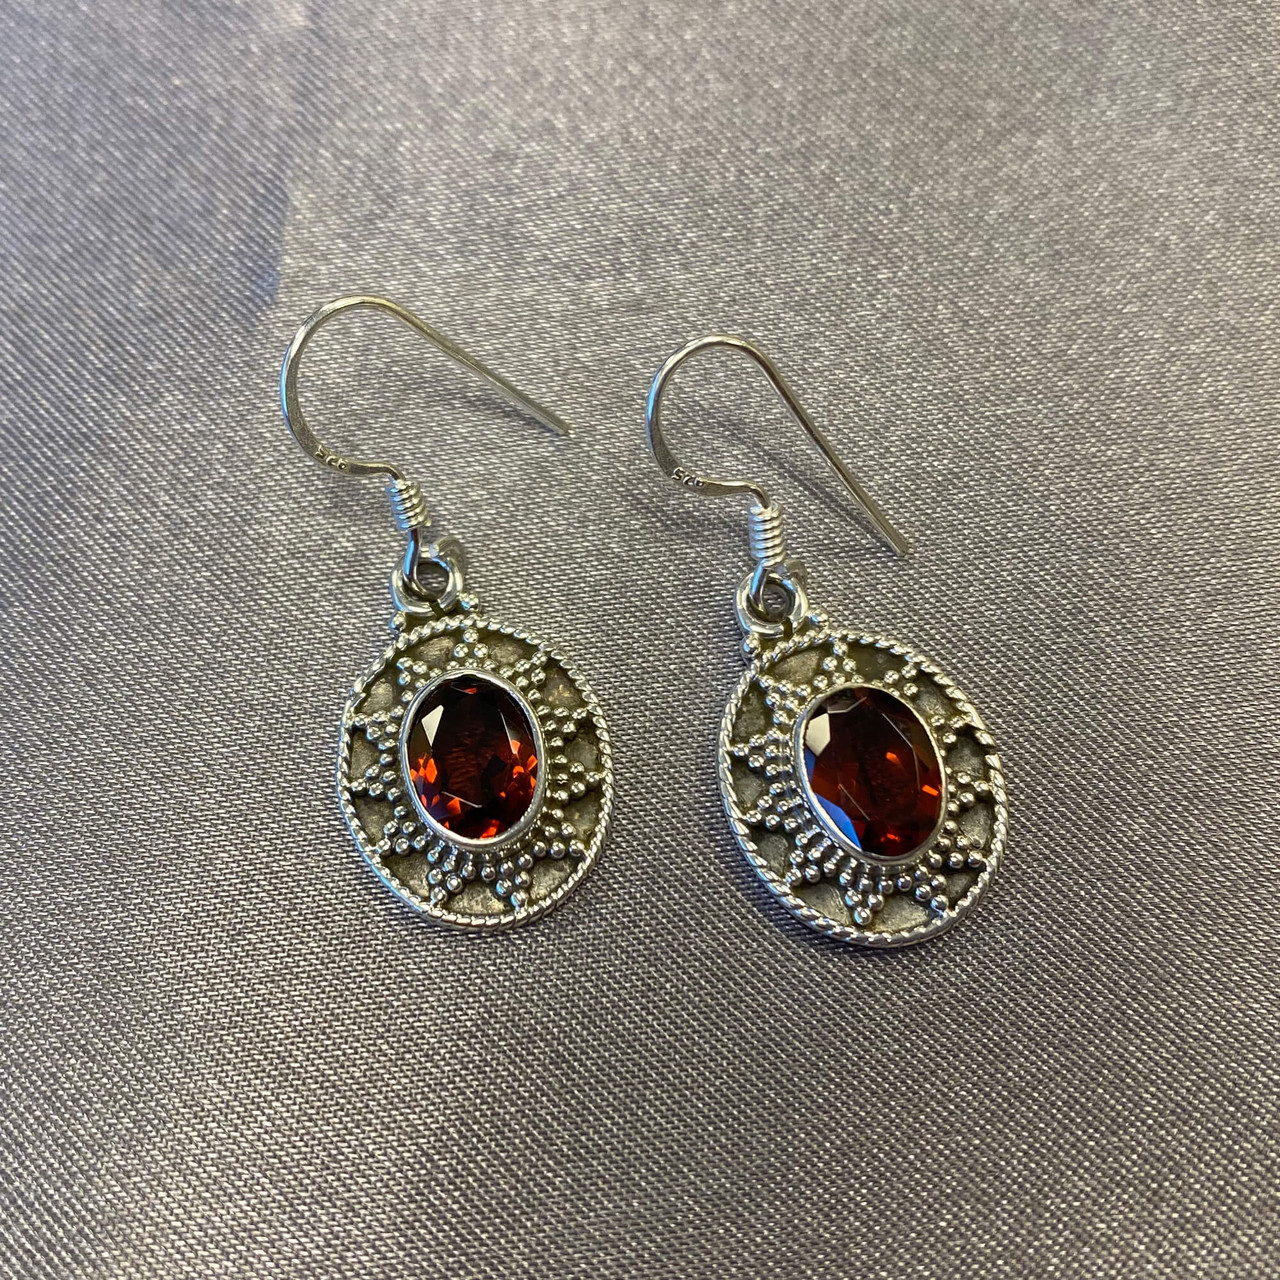 925 Sterling Silver Bali Design Oval Genuine Garnet Gemstone French Hook Earrings